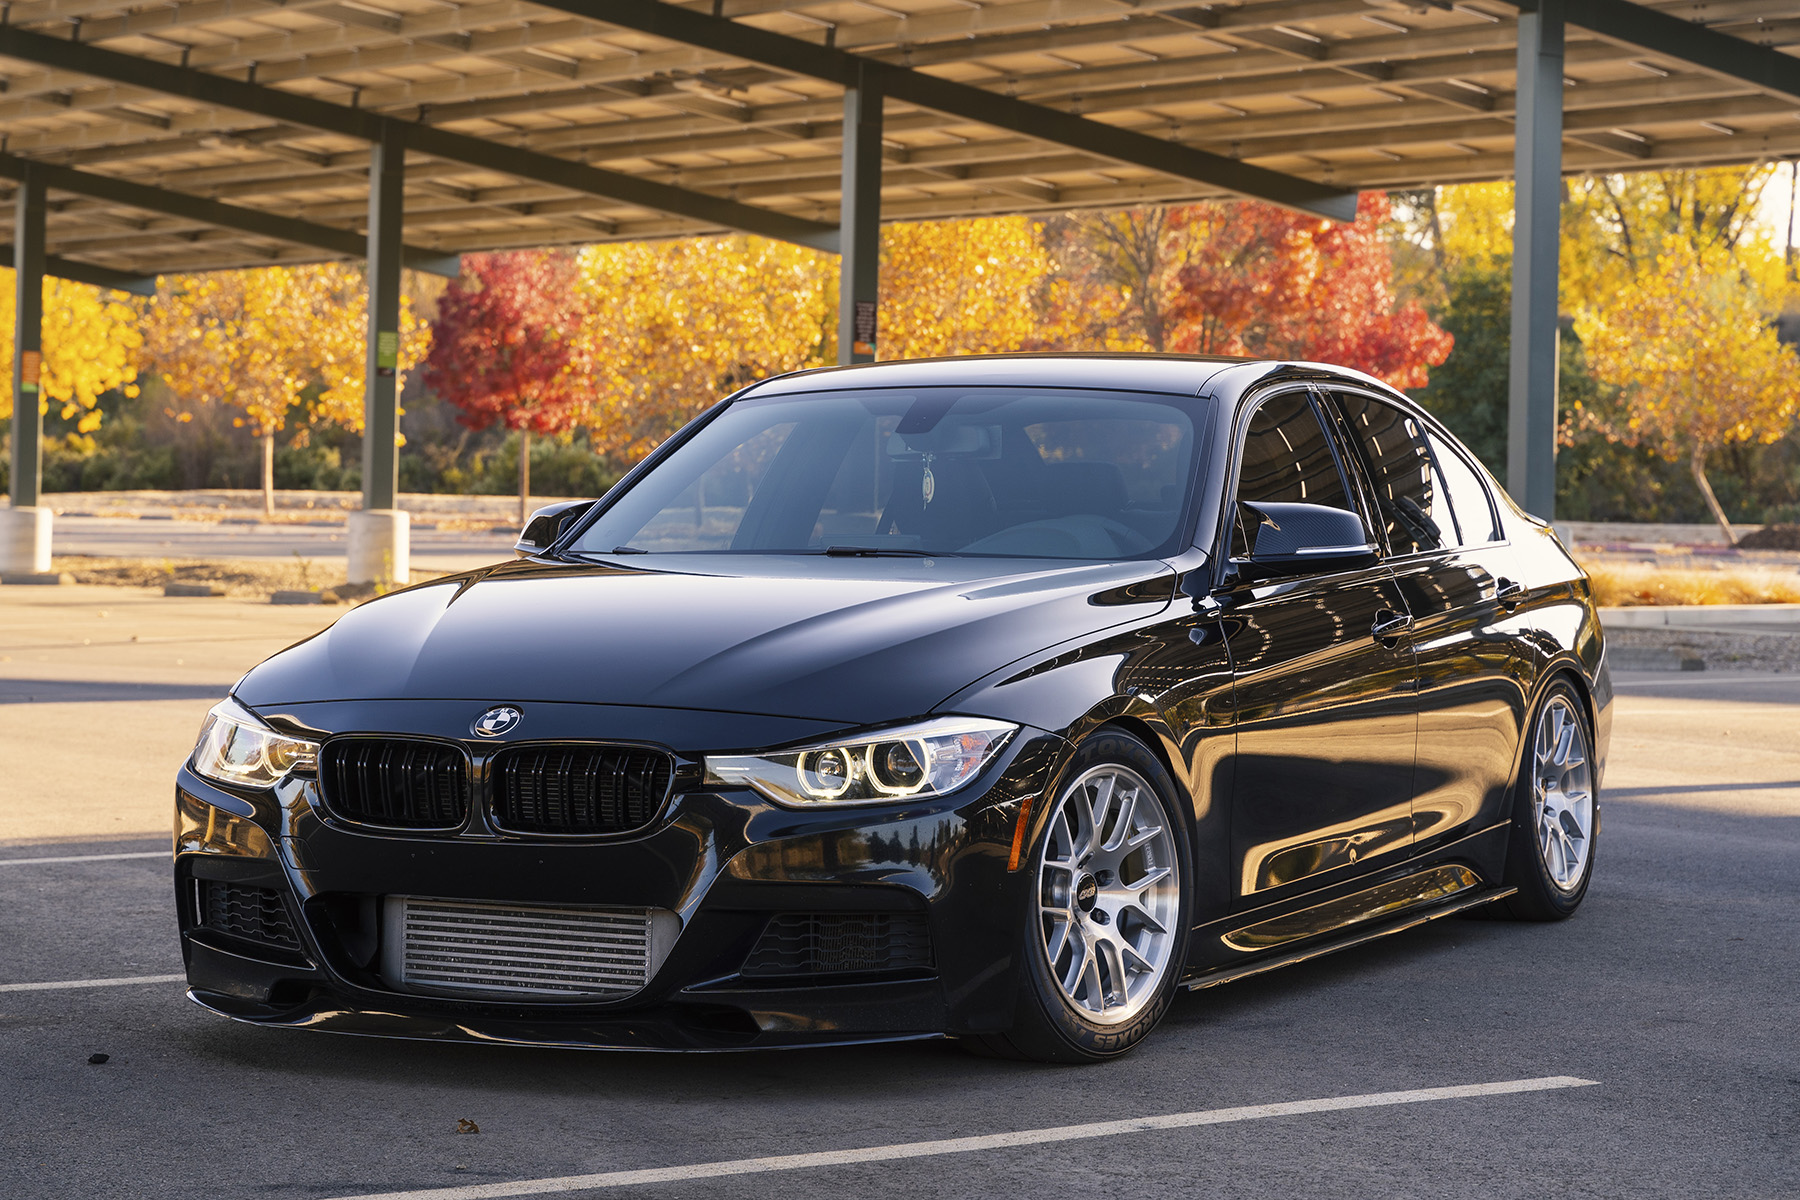 Bmw F30 3 Series Featuring Ec 7r Forged Wheels Apex Race